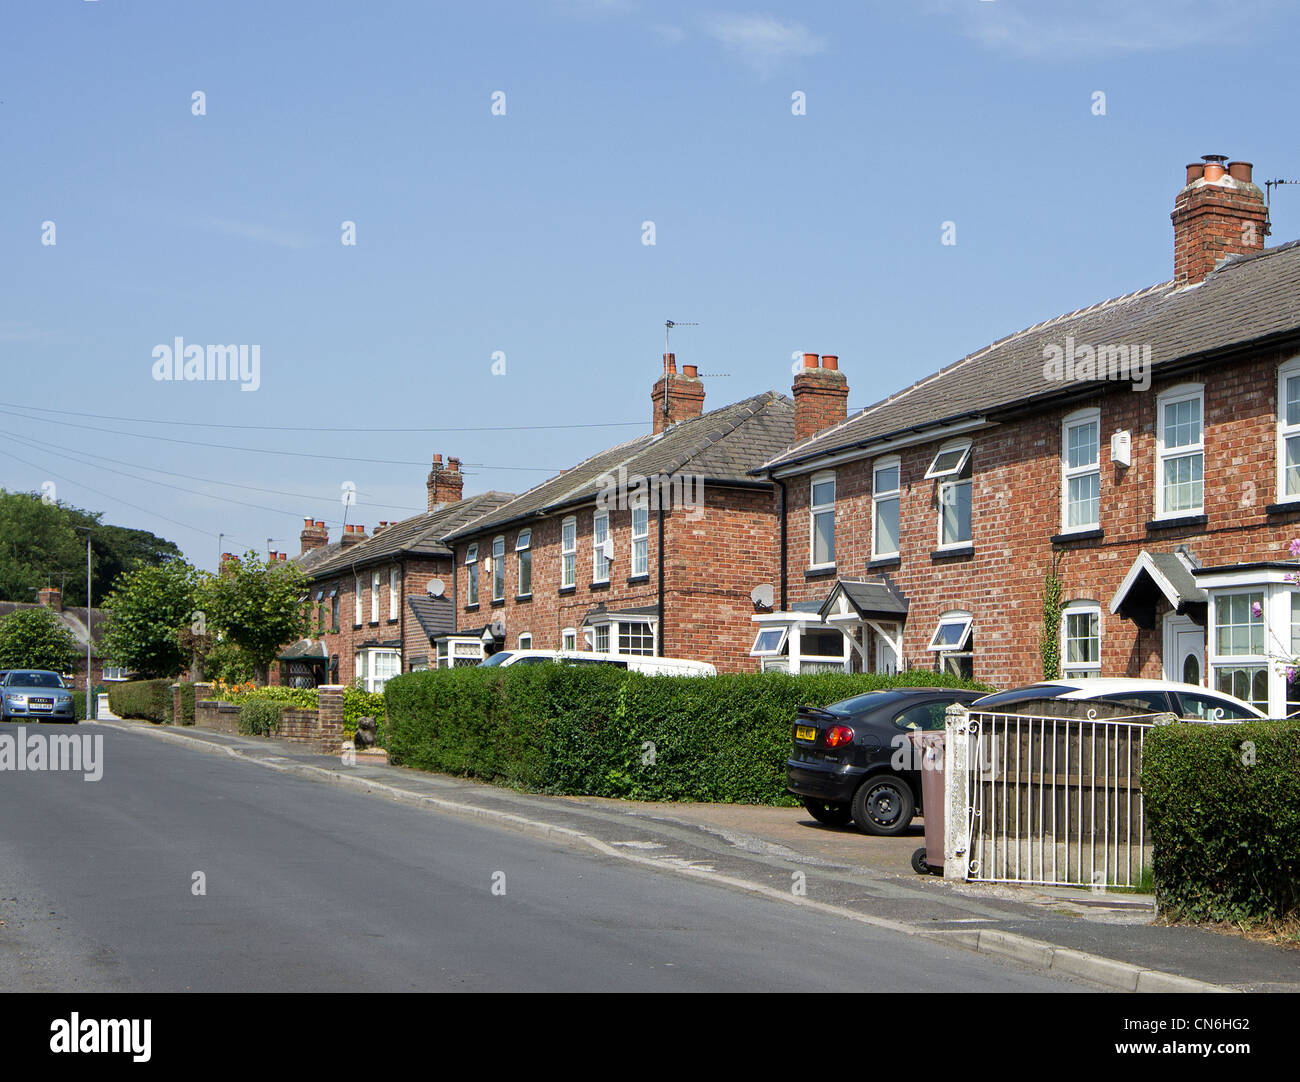 A quiet suburban street near Manchester, UK - Stock Image